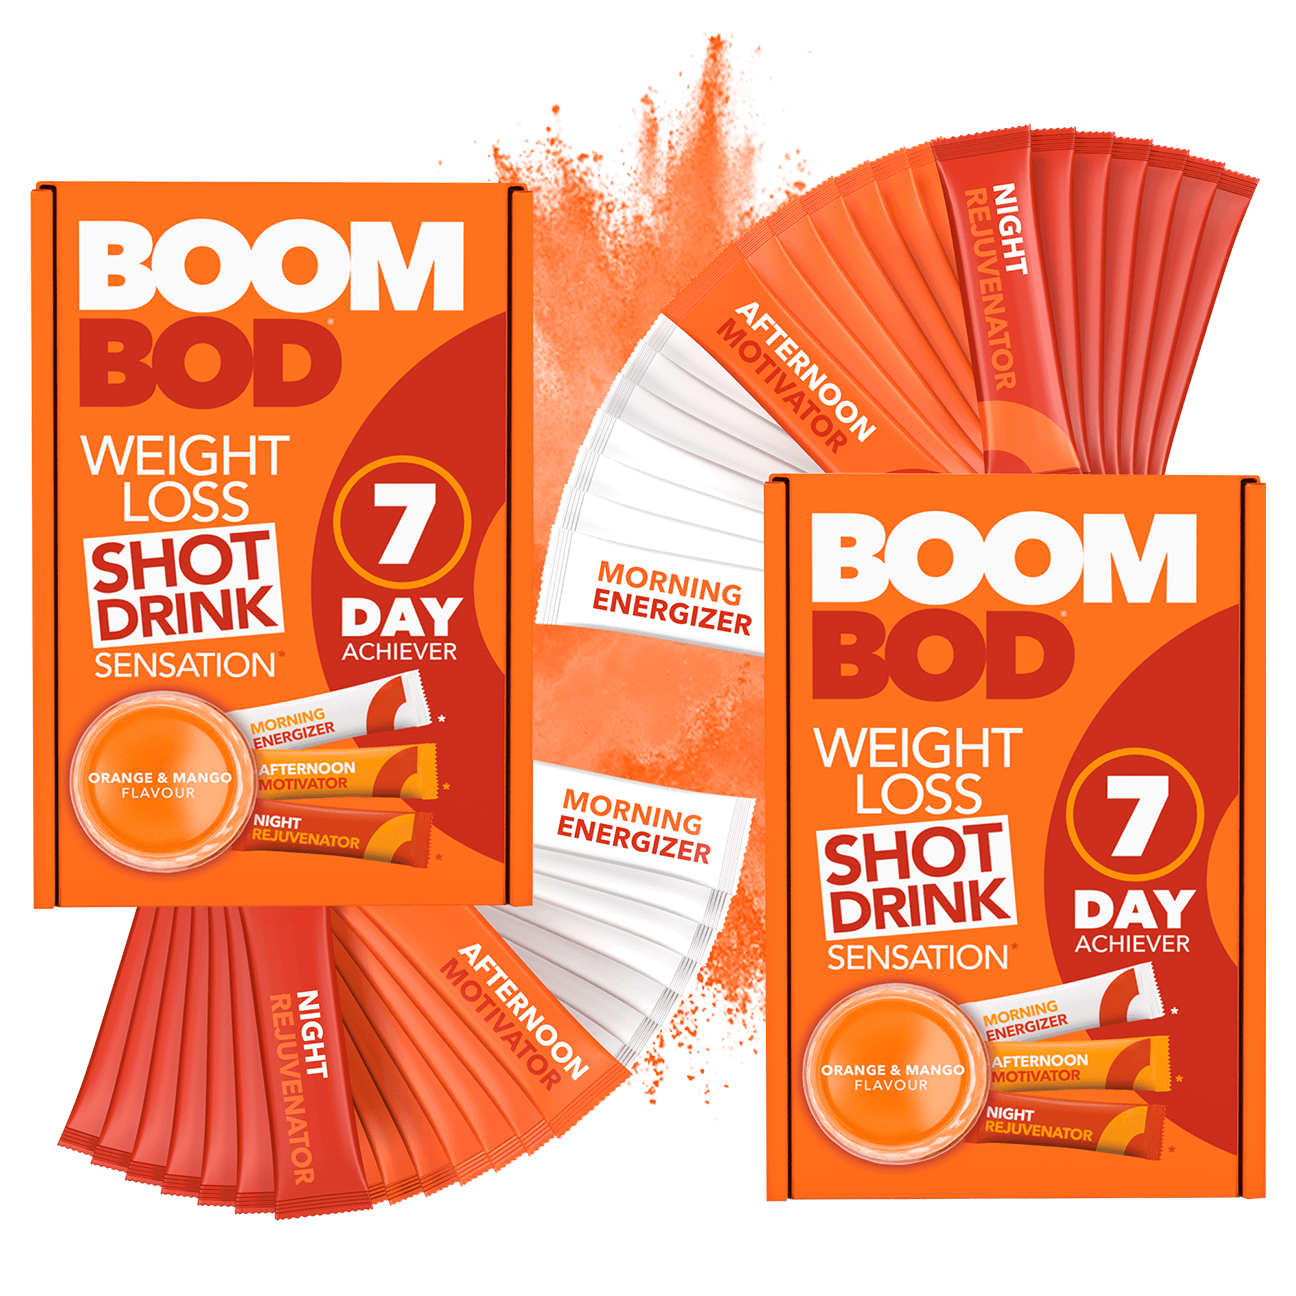 Boombod 14 Day Achiever | Orange Mango | Weight Loss Shot Drink